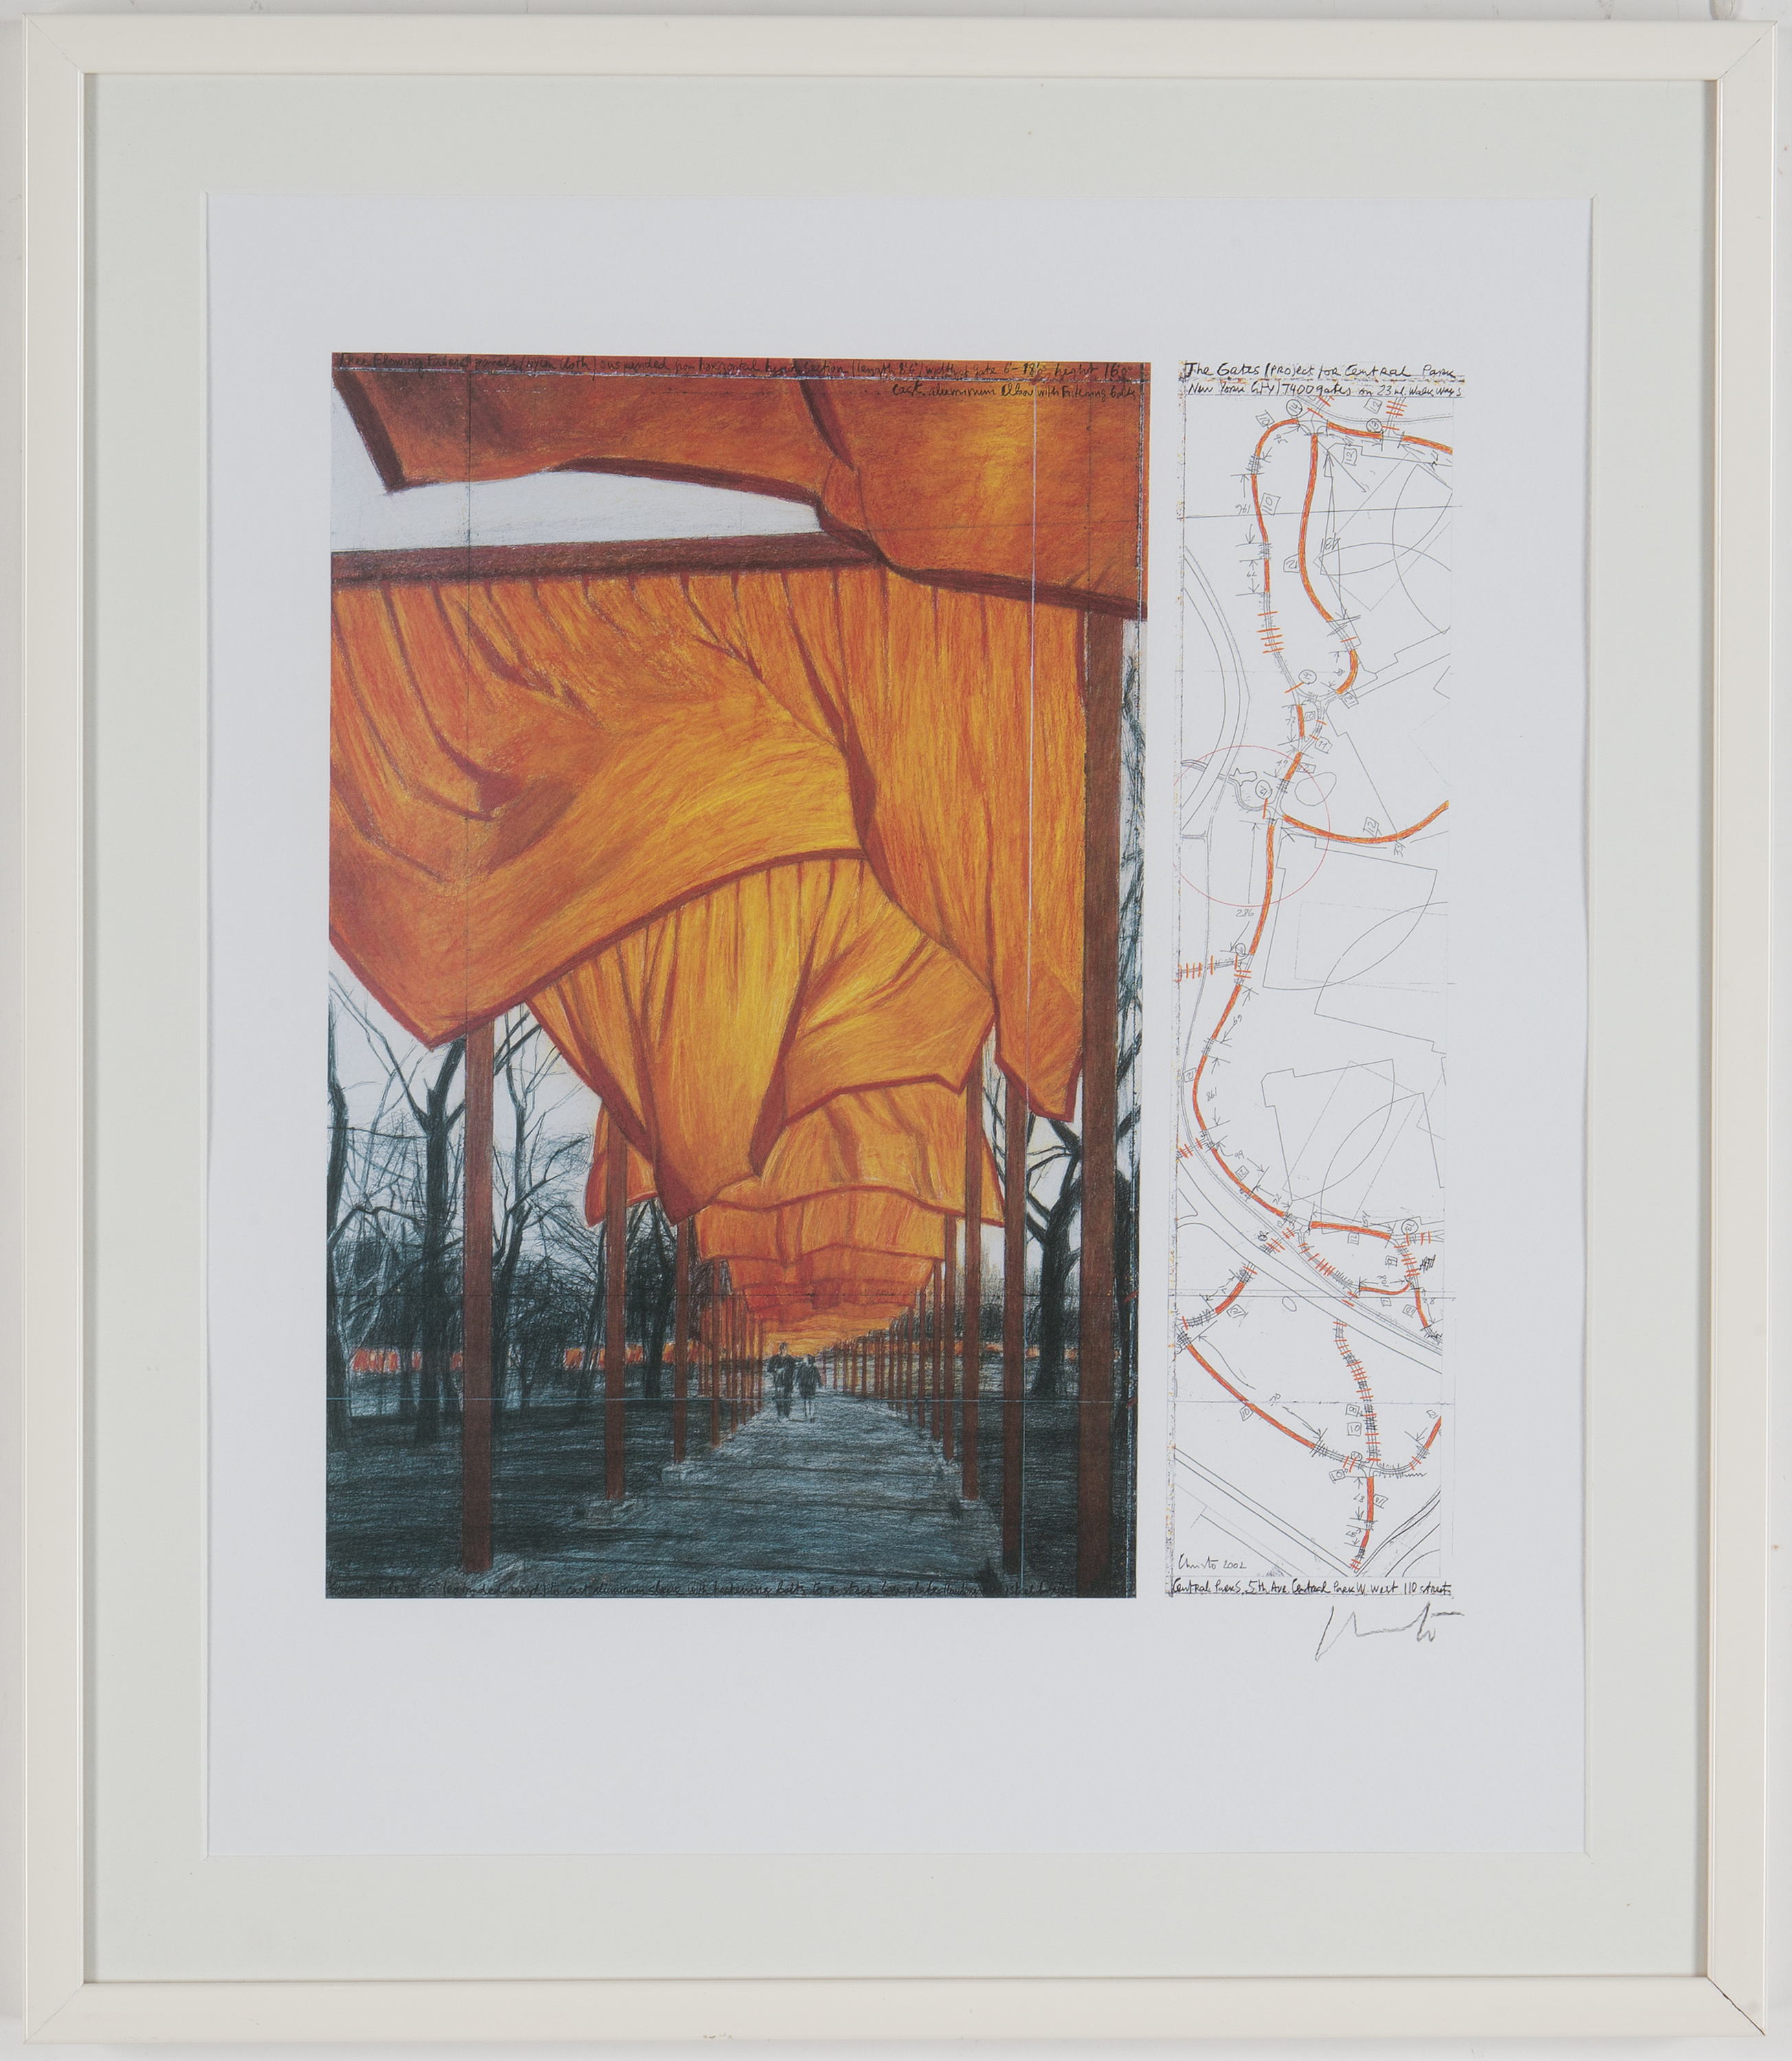 Christo Jeanne Claude Offset Print Signed In Pencil Bukowskis